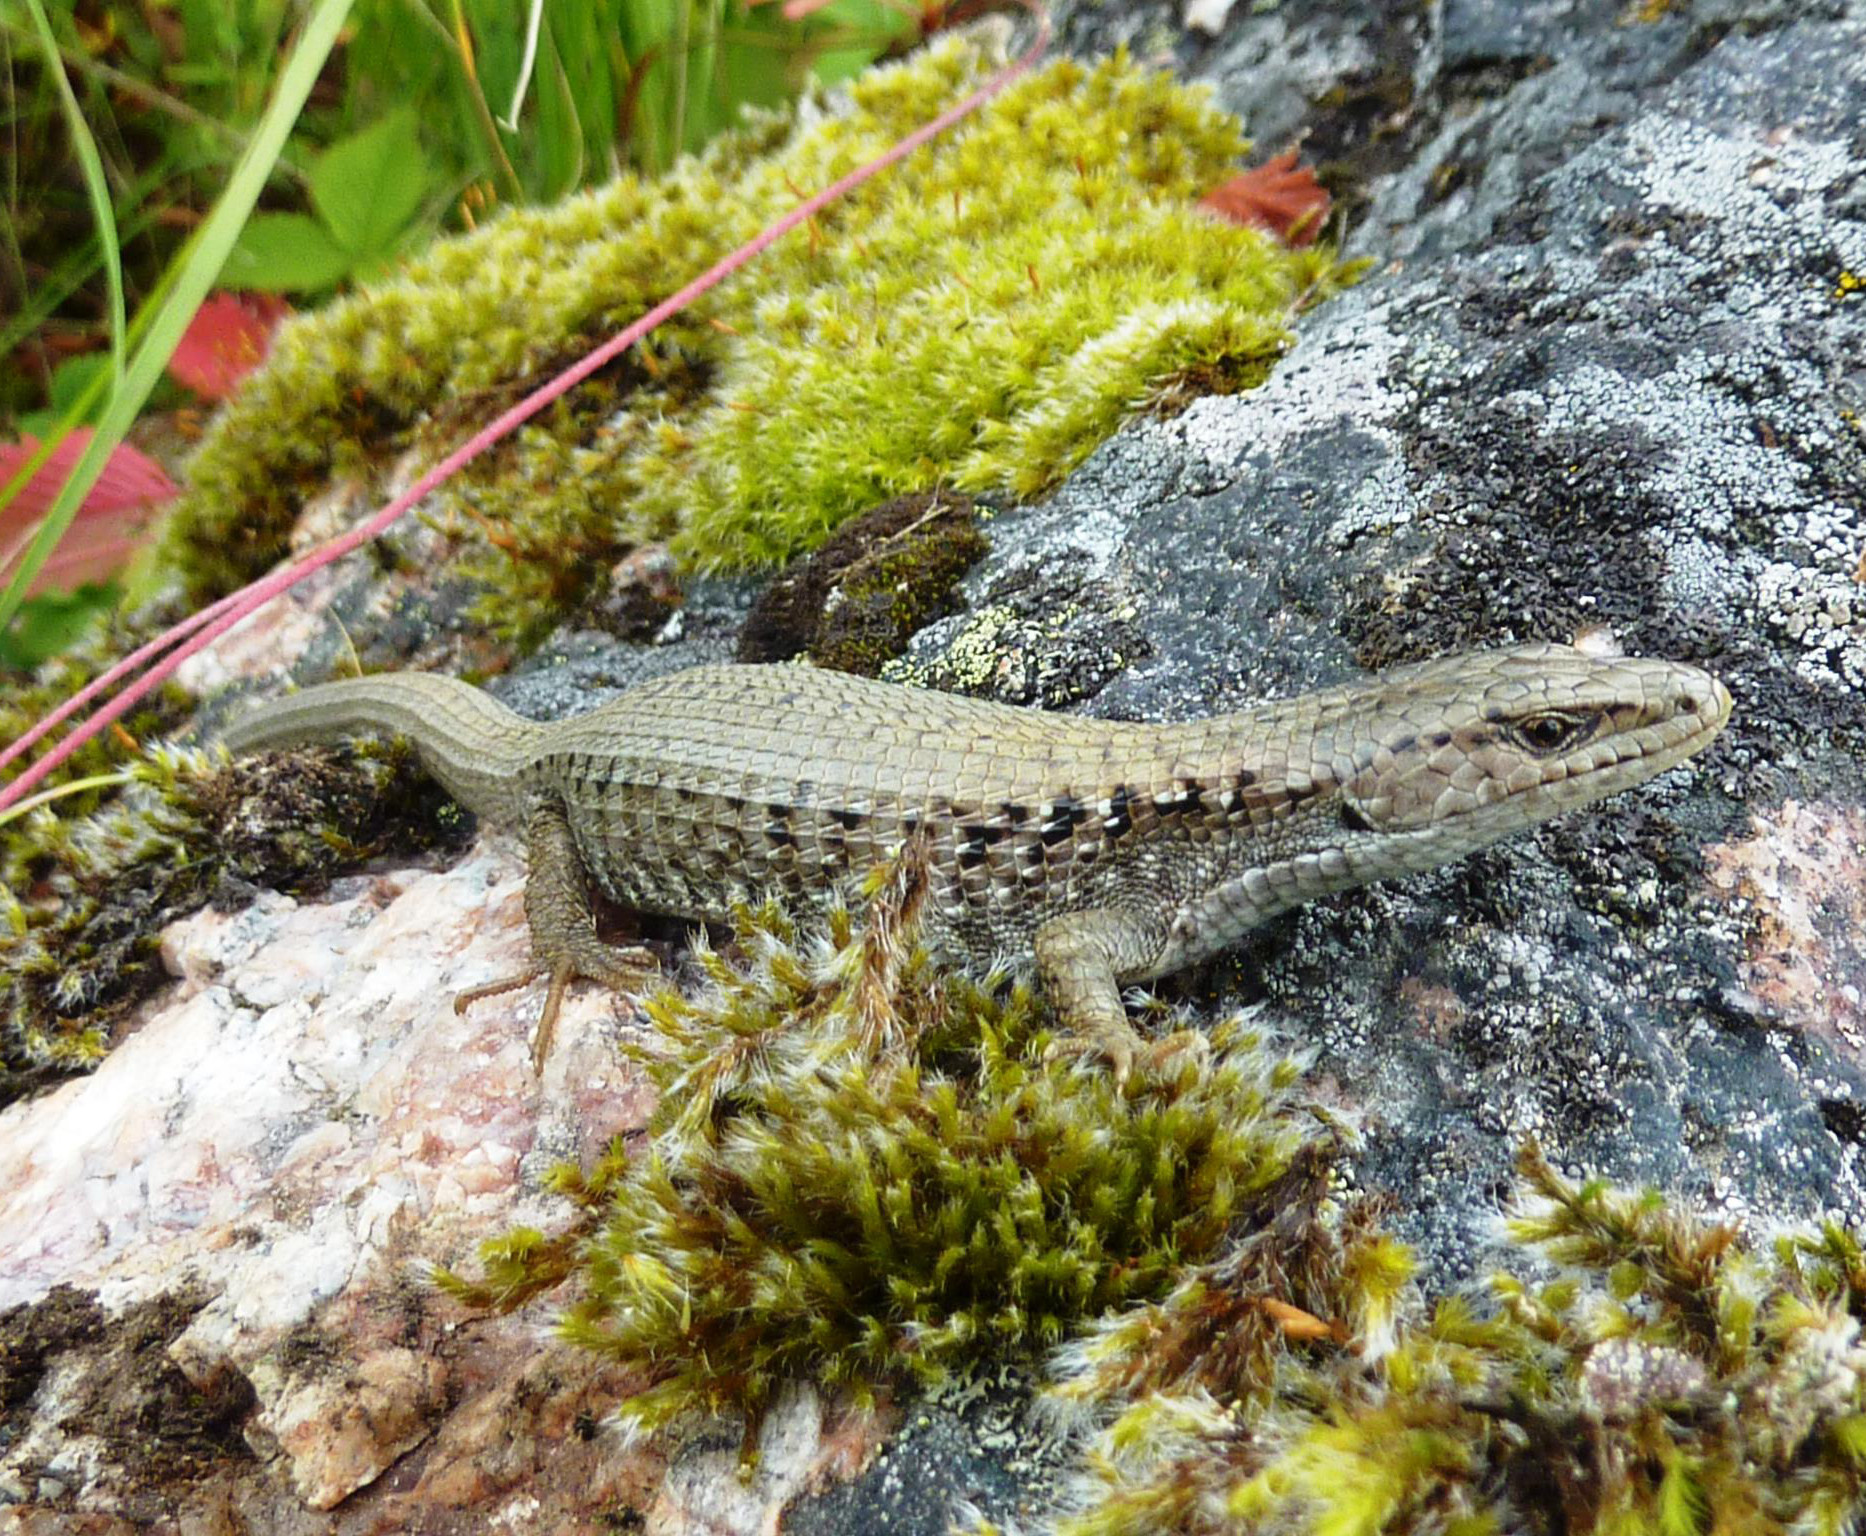 Northern Alligator Lizard Photo